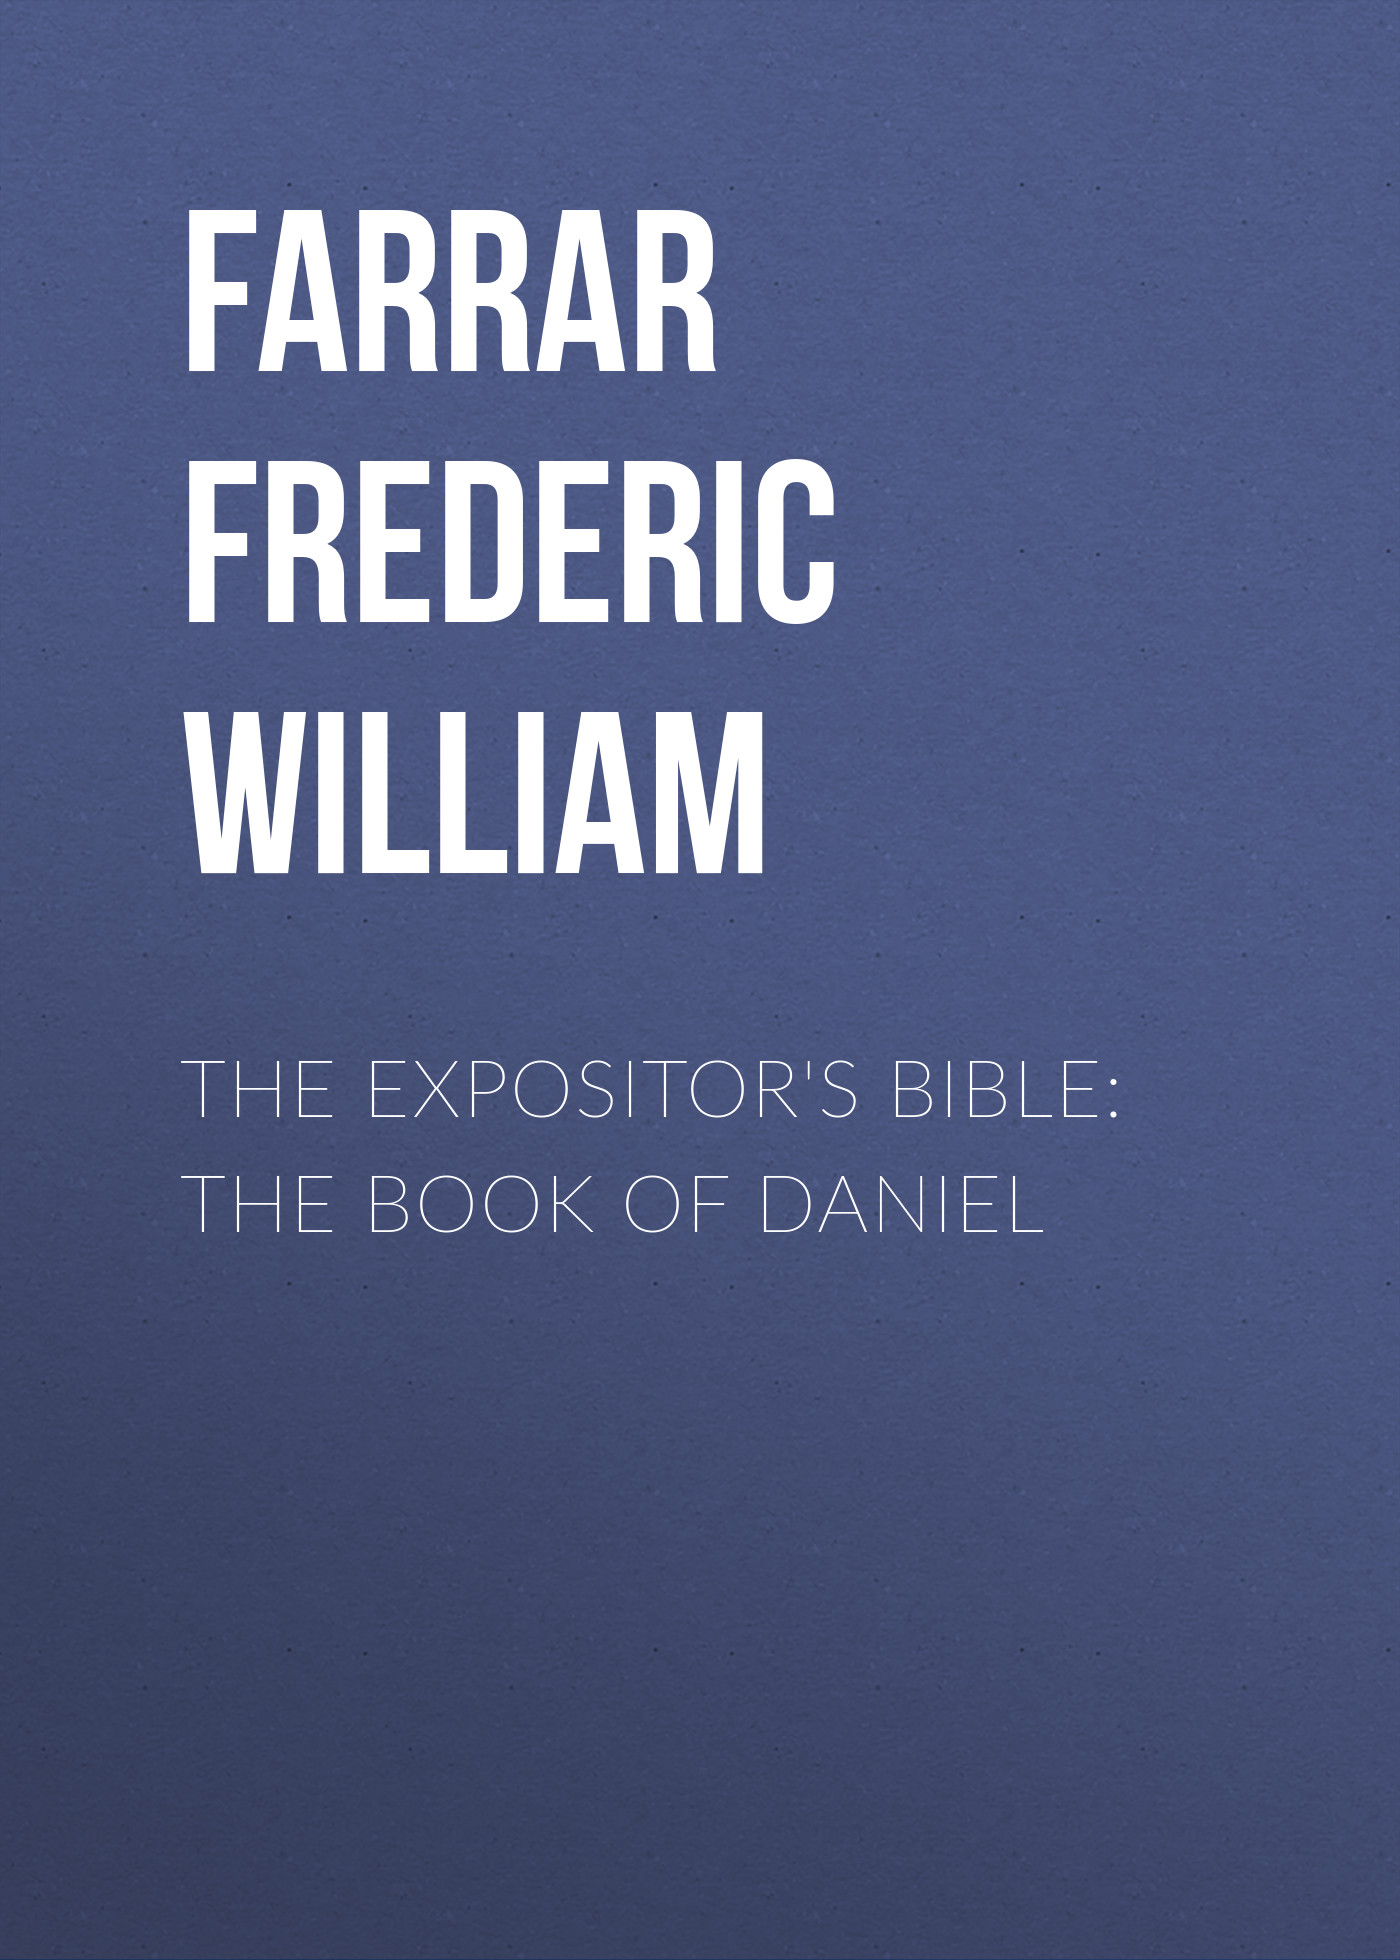 Farrar Frederic William The Expositor's Bible: The Book of Daniel william garden blaikie the book of joshua v 6